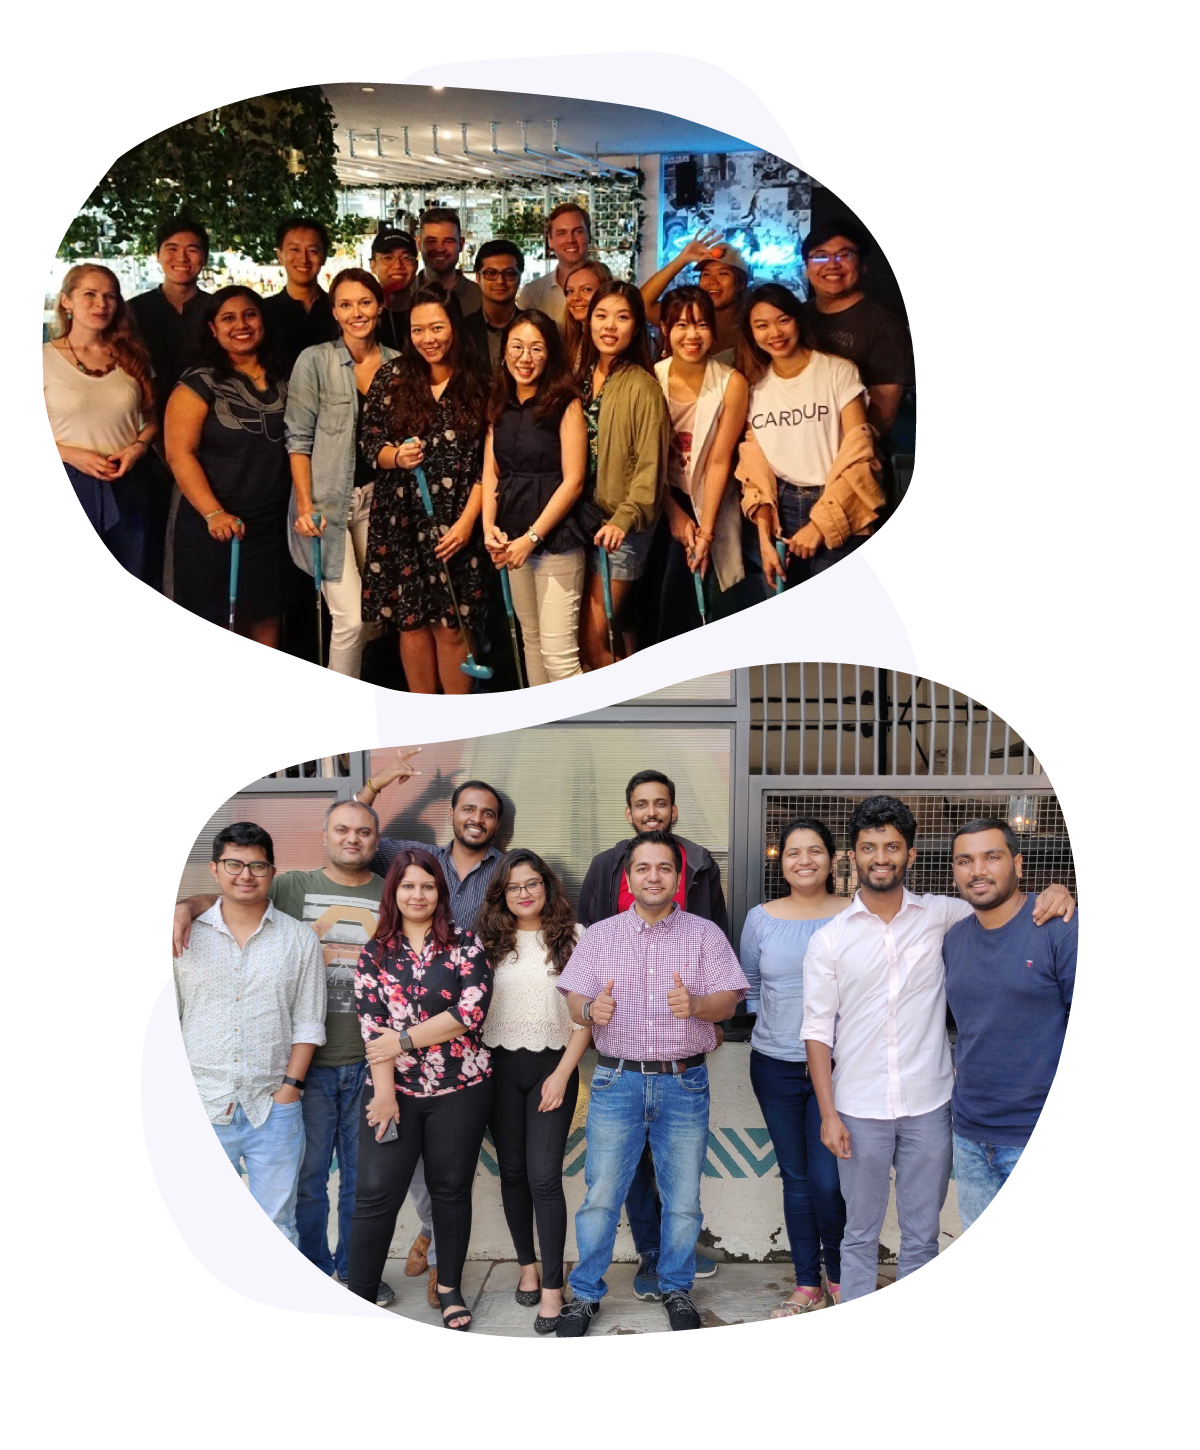 Group photos of the CardUp Team in Singapore and India